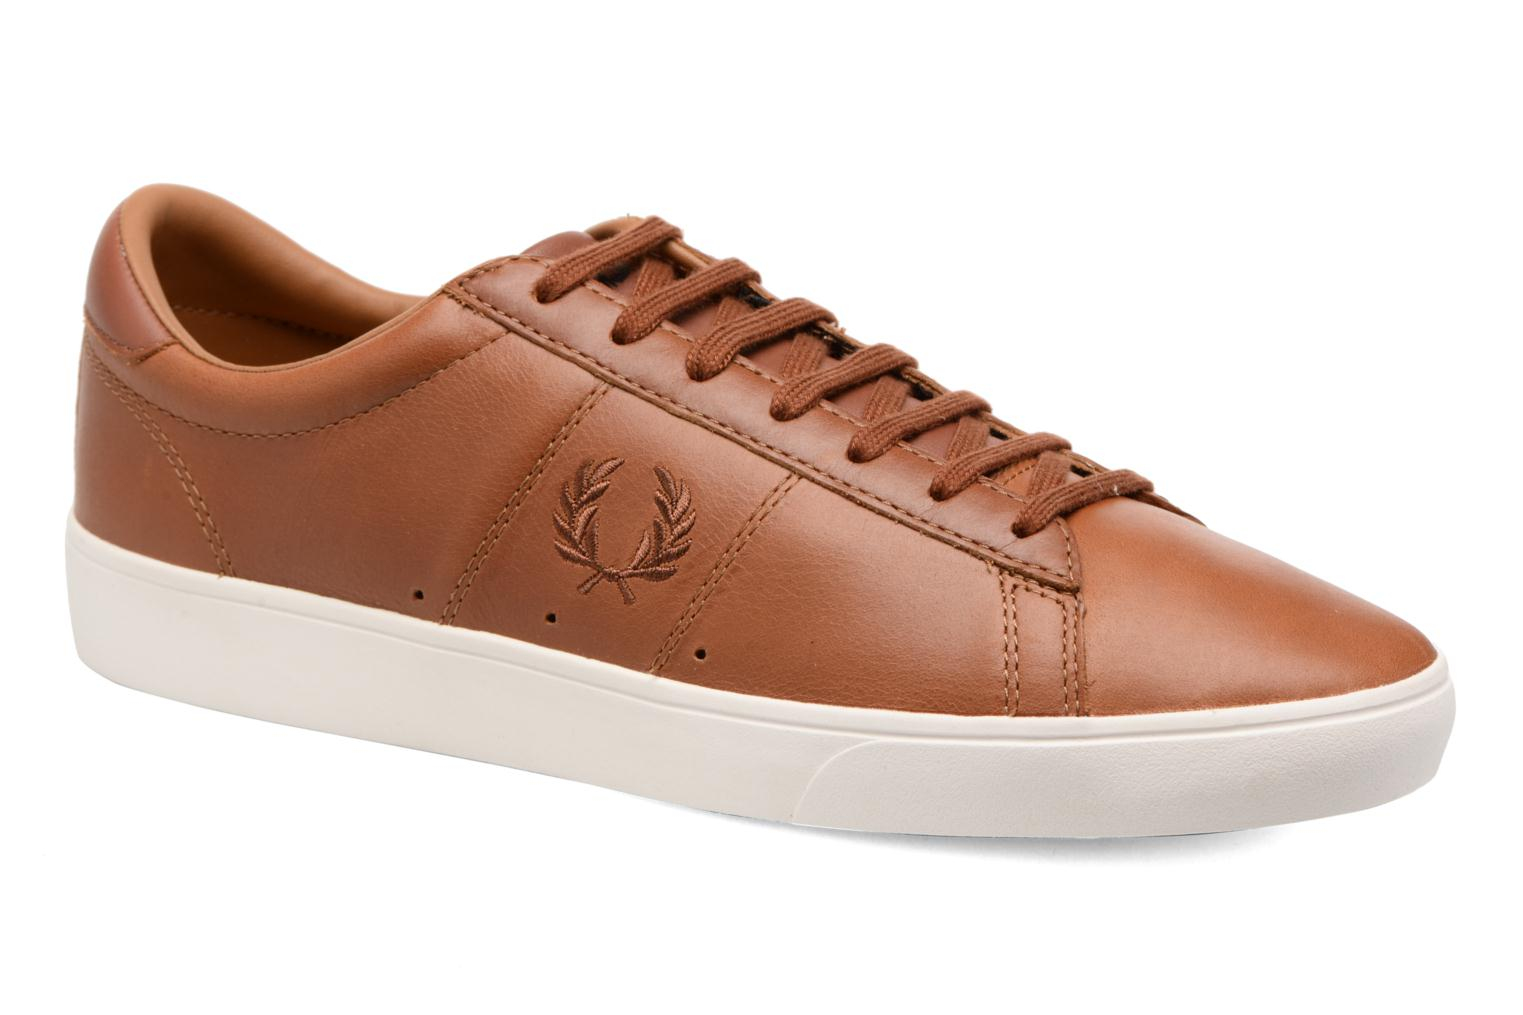 Chaussures Fred Perry Spencer marron Fashion homme HhbB39p